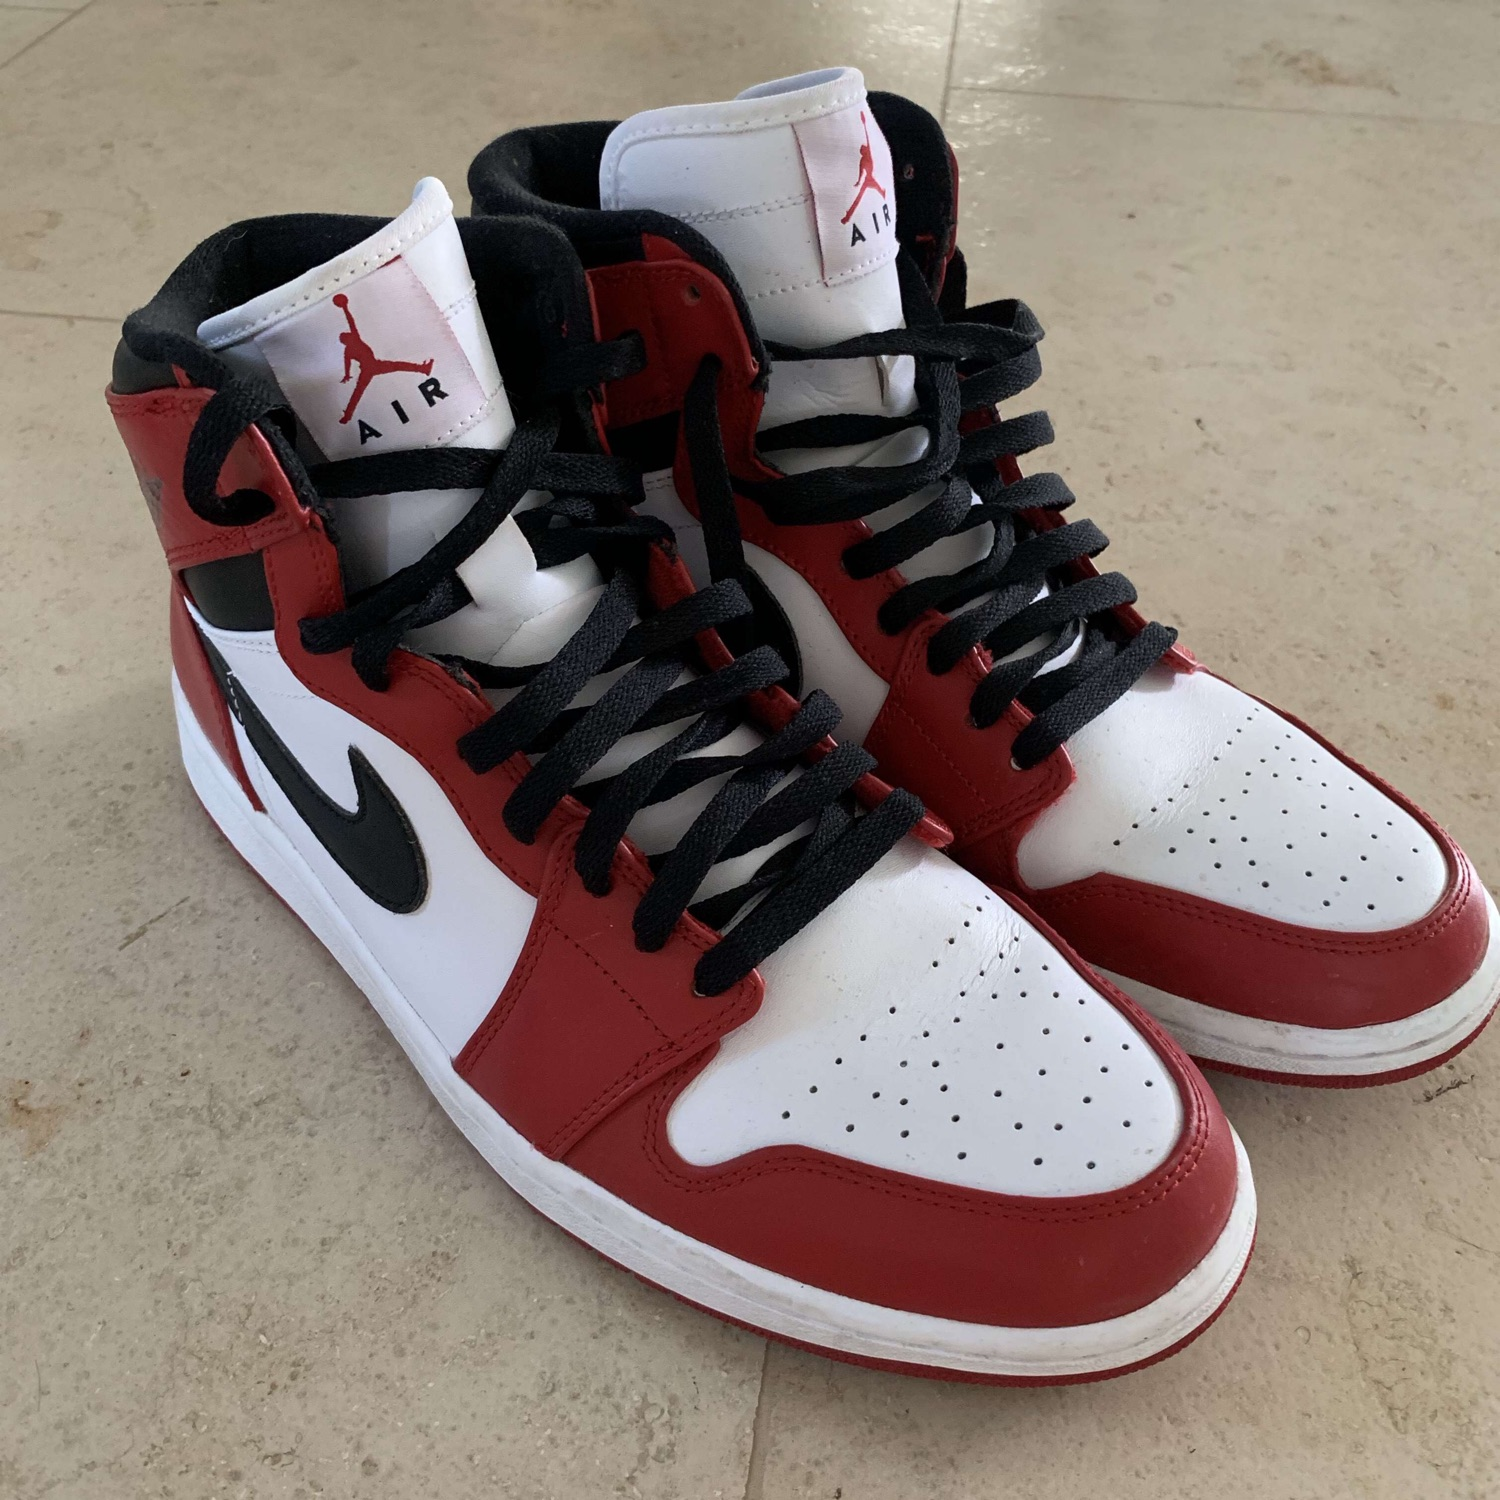 separation shoes f1d3b 4e132 Air Jordan 1 Chicago 2013